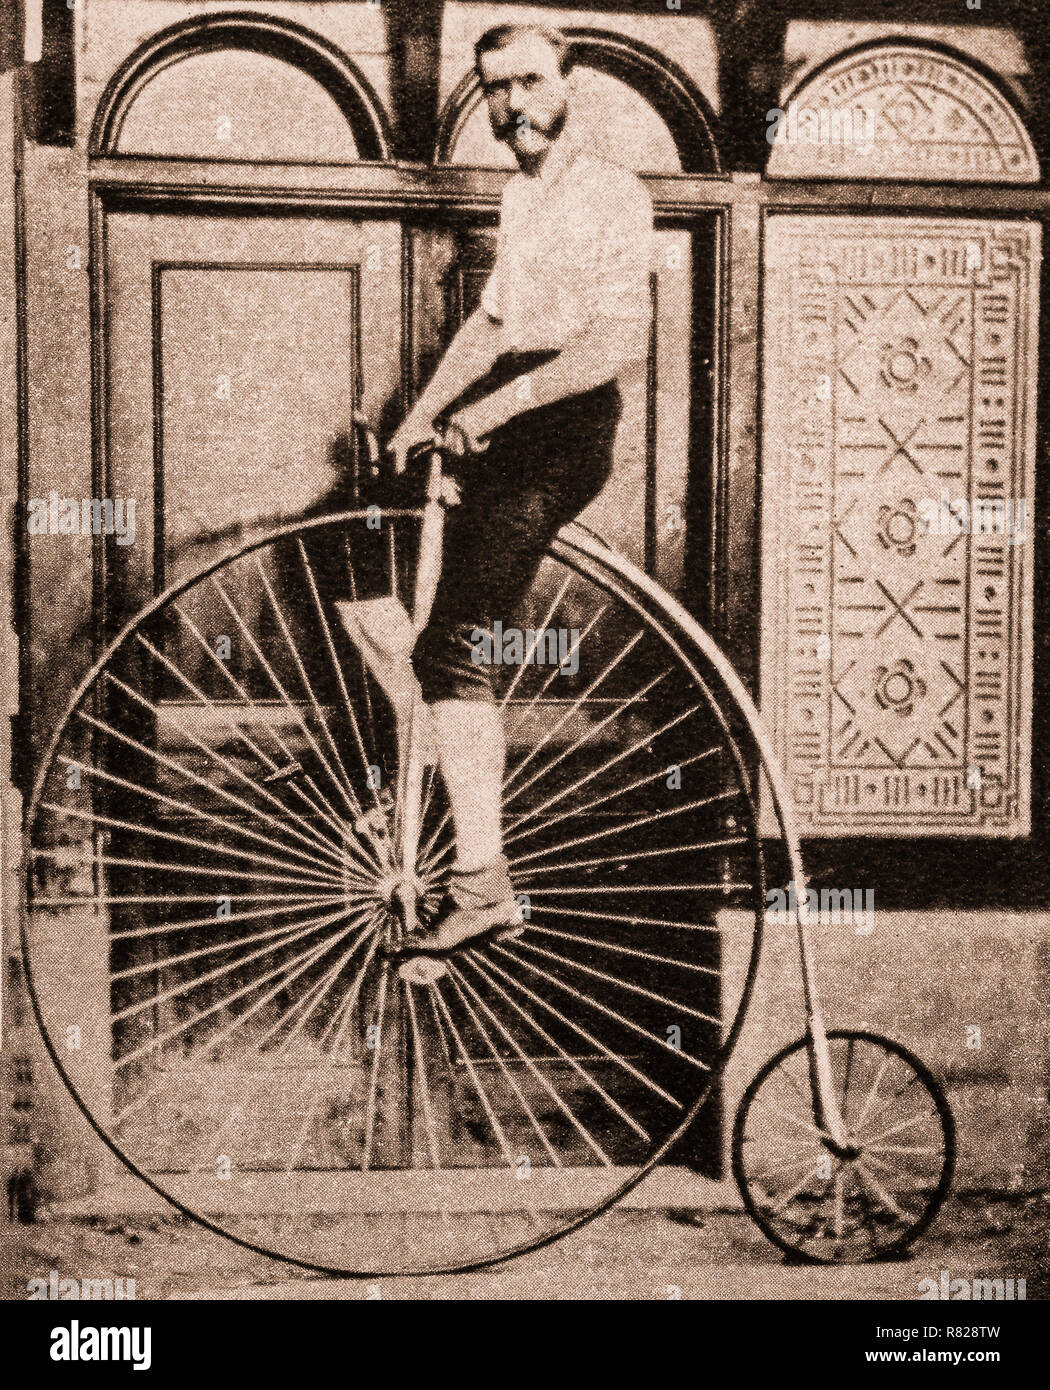 The penny-farthing, also known as a high wheel, high wheeler and ordinary, was the first machine to be called a 'bicycle' Popular in the 1870s and 1880s, with its large front wheel providing high speeds (owing to it travelling a large distance for every rotation of the legs) and comfort (the large wheel provides greater shock absorption), it became obsolete from the late 1880s with the development of modern bicycles, which provided similar speed amplification via chain-driven gear trains and comfort through pneumatic tyres, and were marketed in comparison to penny-farthings as 'safety bicycles - Stock Image